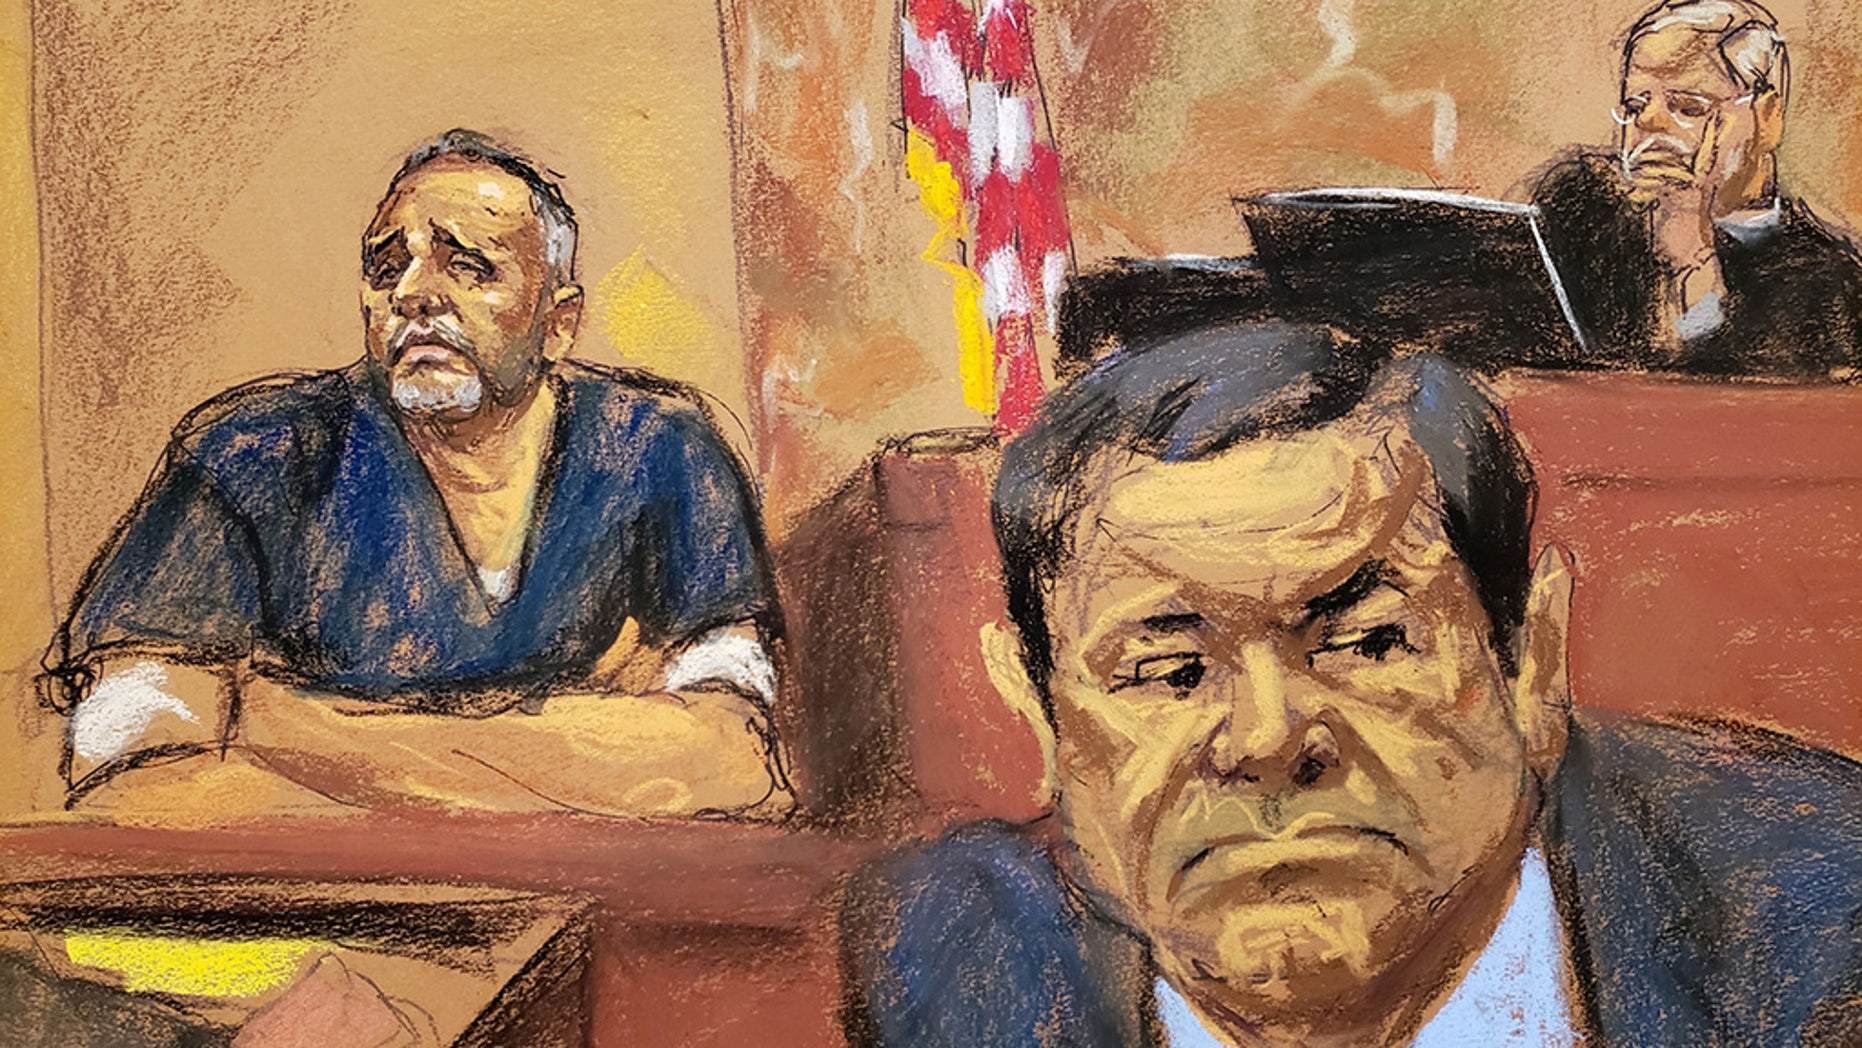 'El Chapo' paid former Mexican president $100 million bribe -trial witness